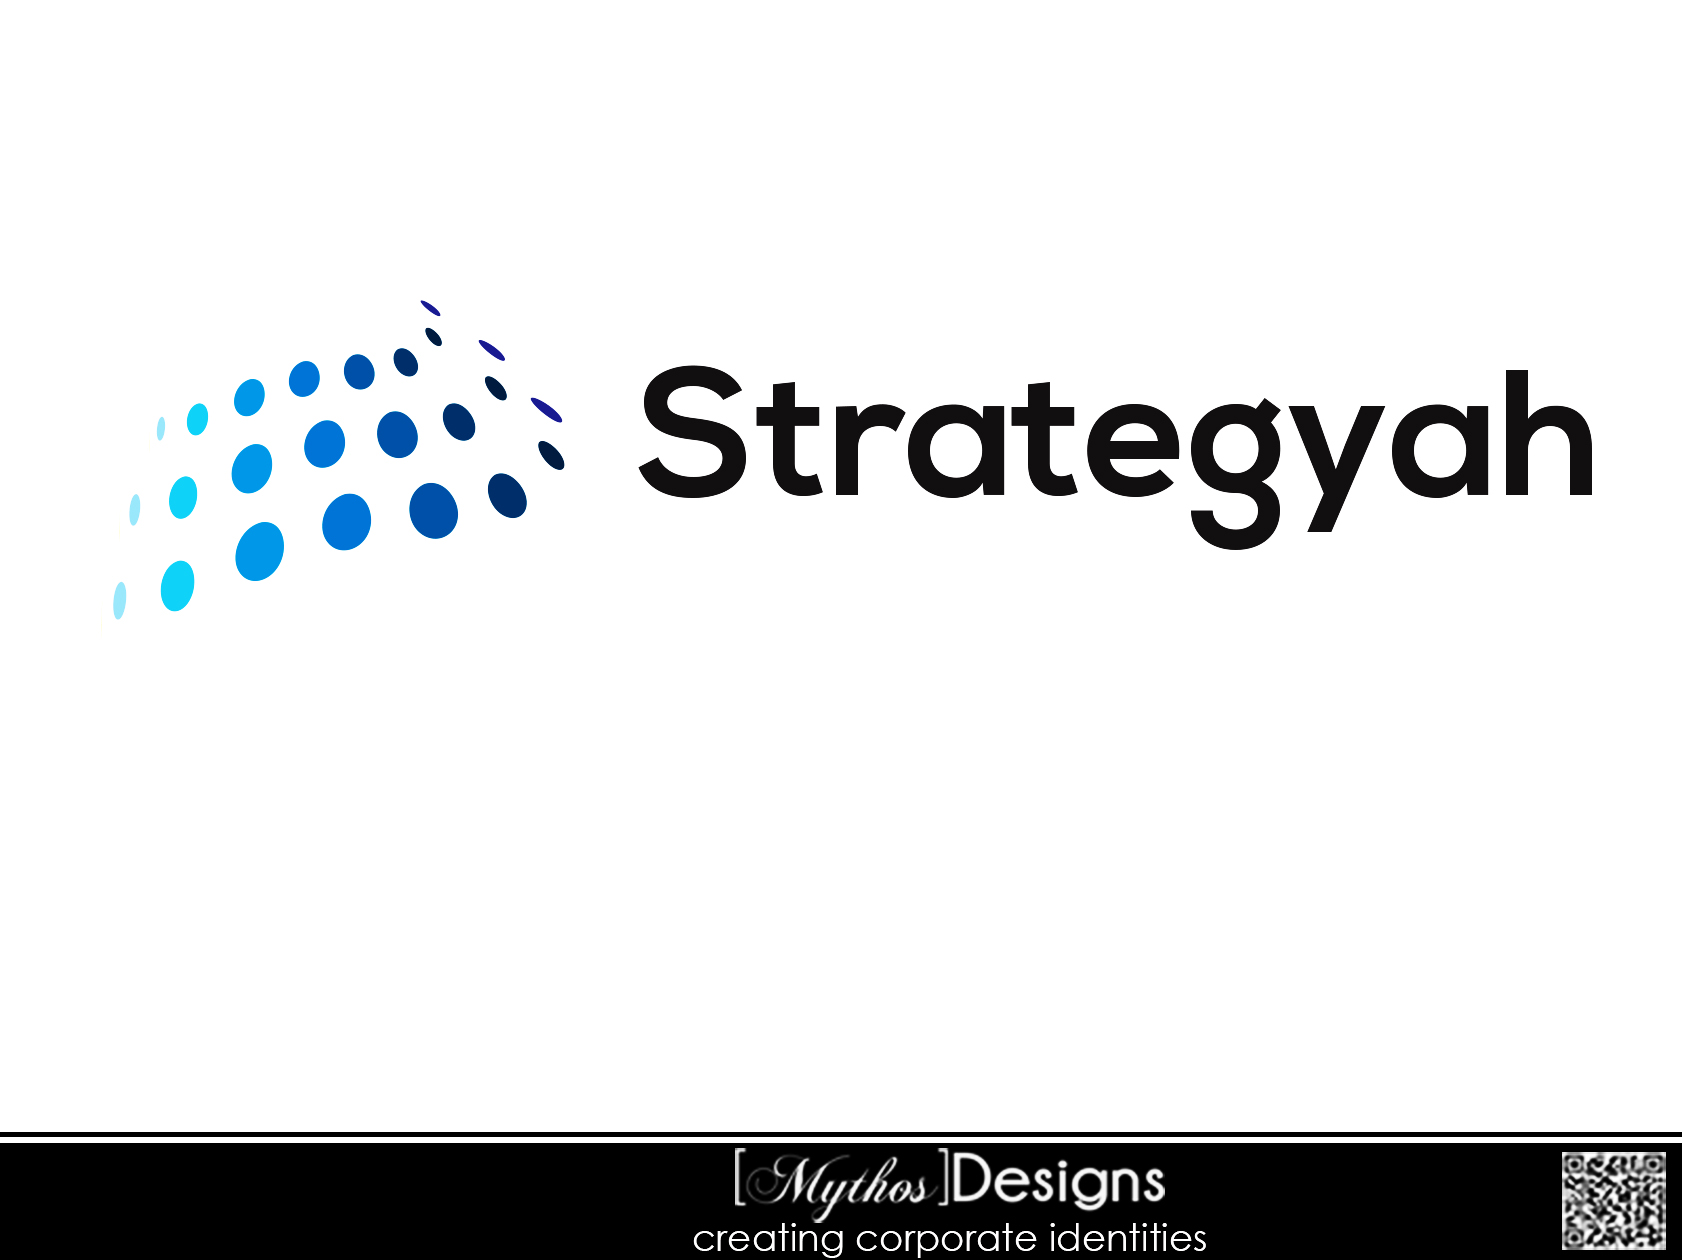 Logo Design by Mythos Designs - Entry No. 97 in the Logo Design Contest Creative Logo Design for Strategyah.